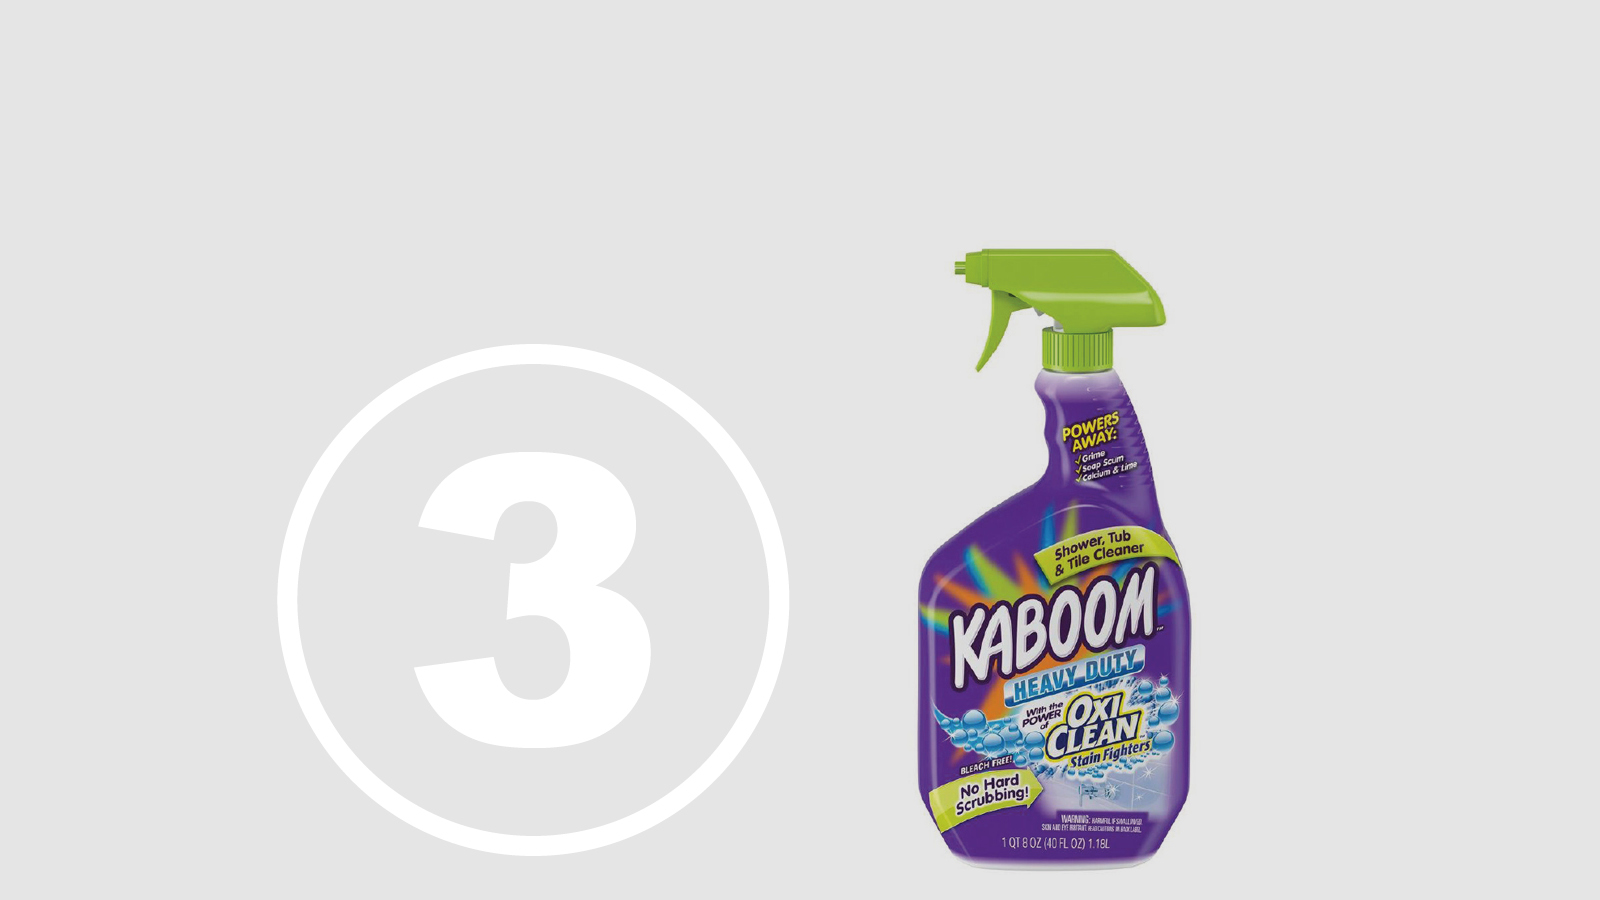 "<h5>Top Ten Most Hazardous Products</h5><h4>Kaboom with OxiClean Shower Tub & Tile Cleaner</h4><p>Marketed as a ""great cleaner that is safe and friendly to use,"" made by Church & Dwight Co.<br />We found <span class=""highlight"">15 chemicals</span> chemicals linked to chronic health effects with <span class=""highlight"">66.7% hidden in ""fragrance.""</span></p>"